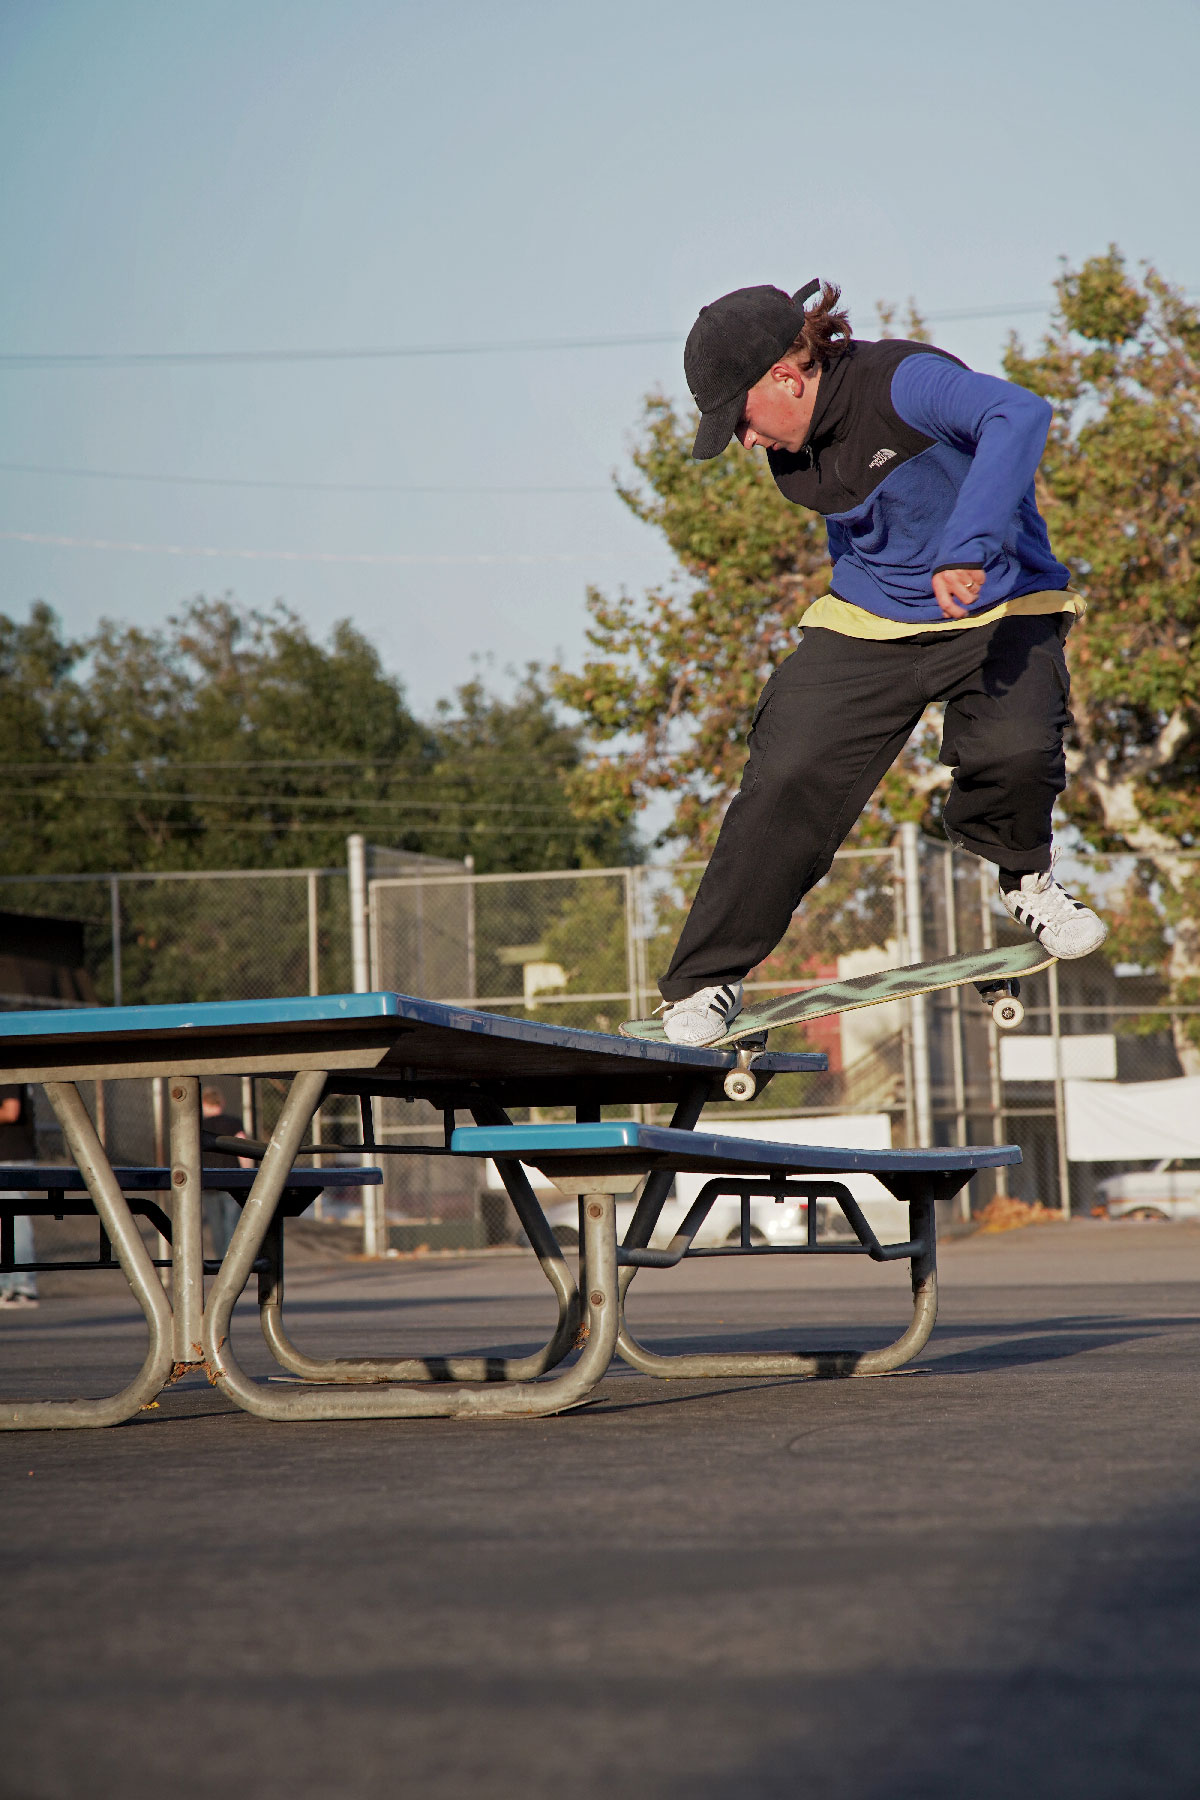 Daniel Ramos - Backside 180 Nosegrind